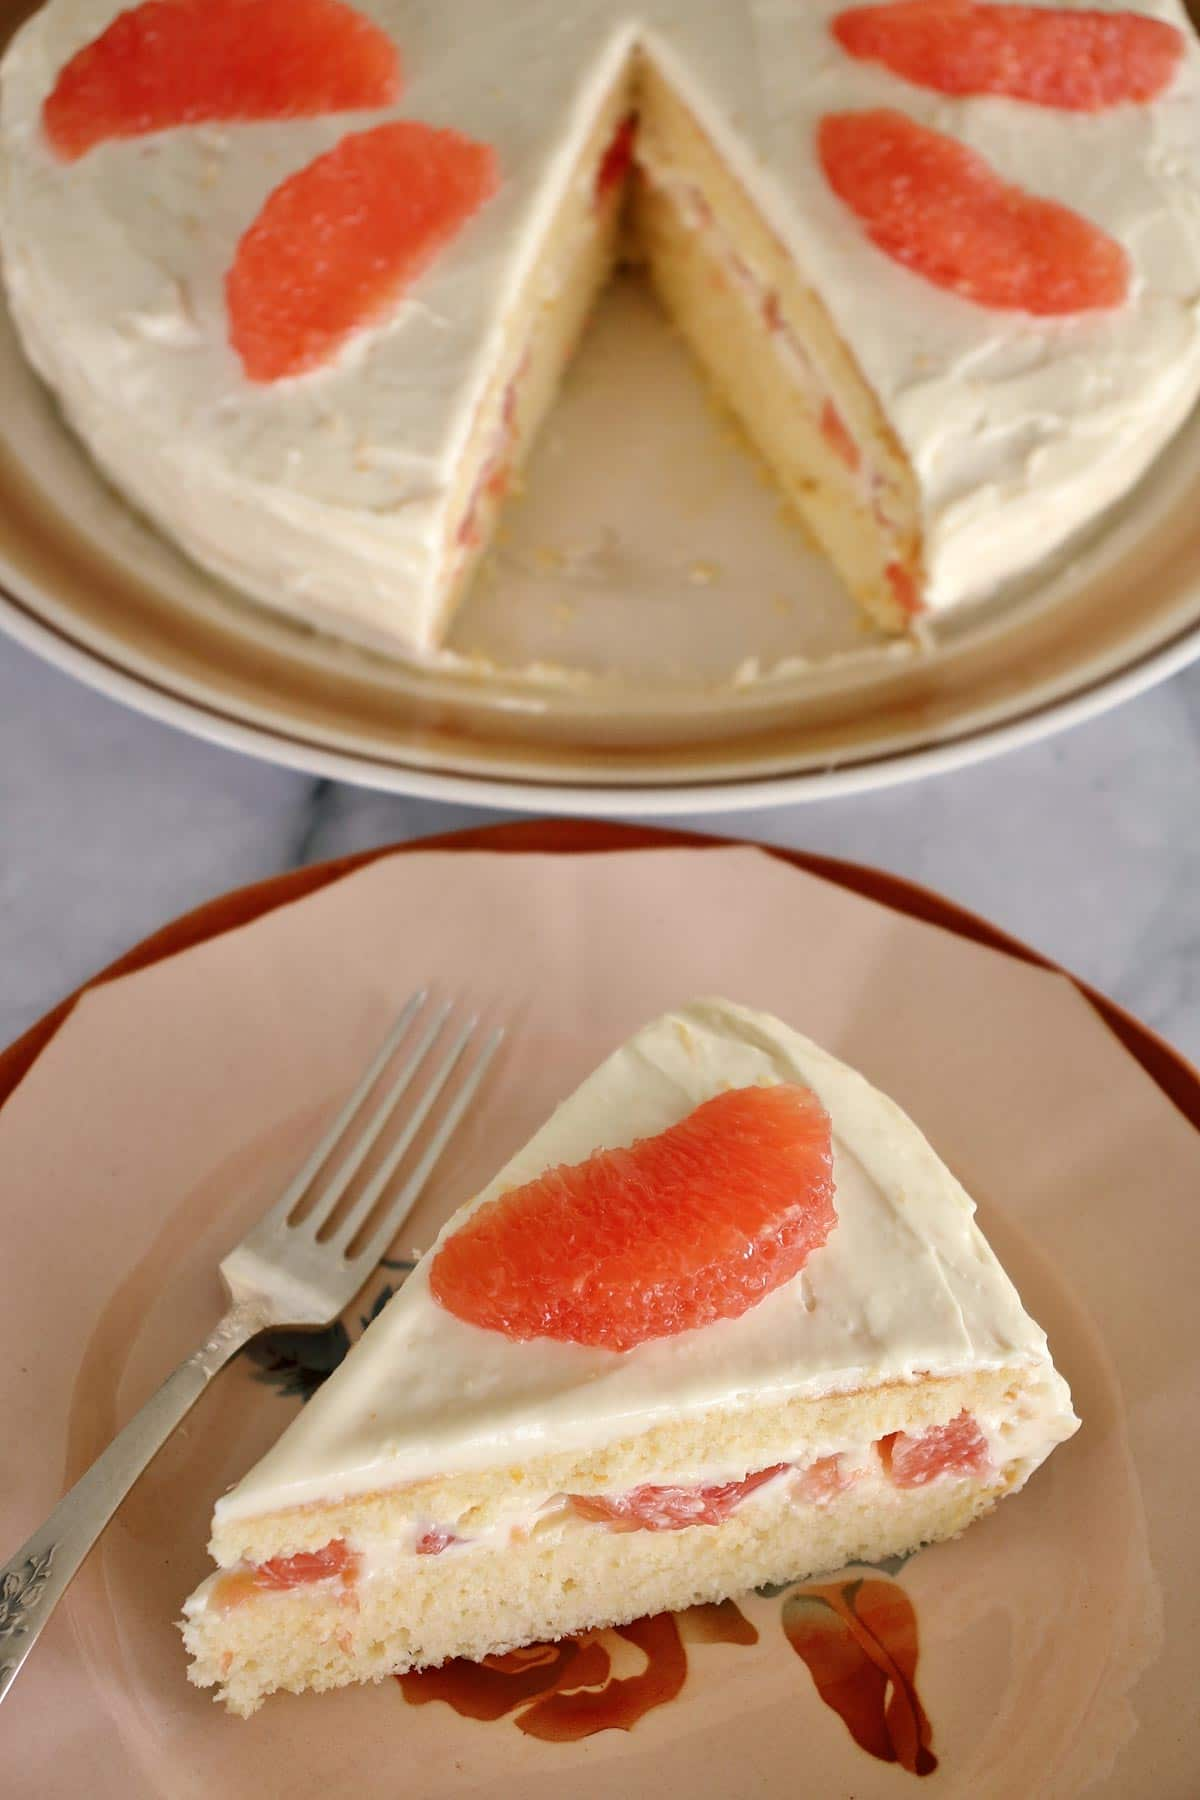 A slice of Hollywood Brown Derby grapefruit cake on an antique plate